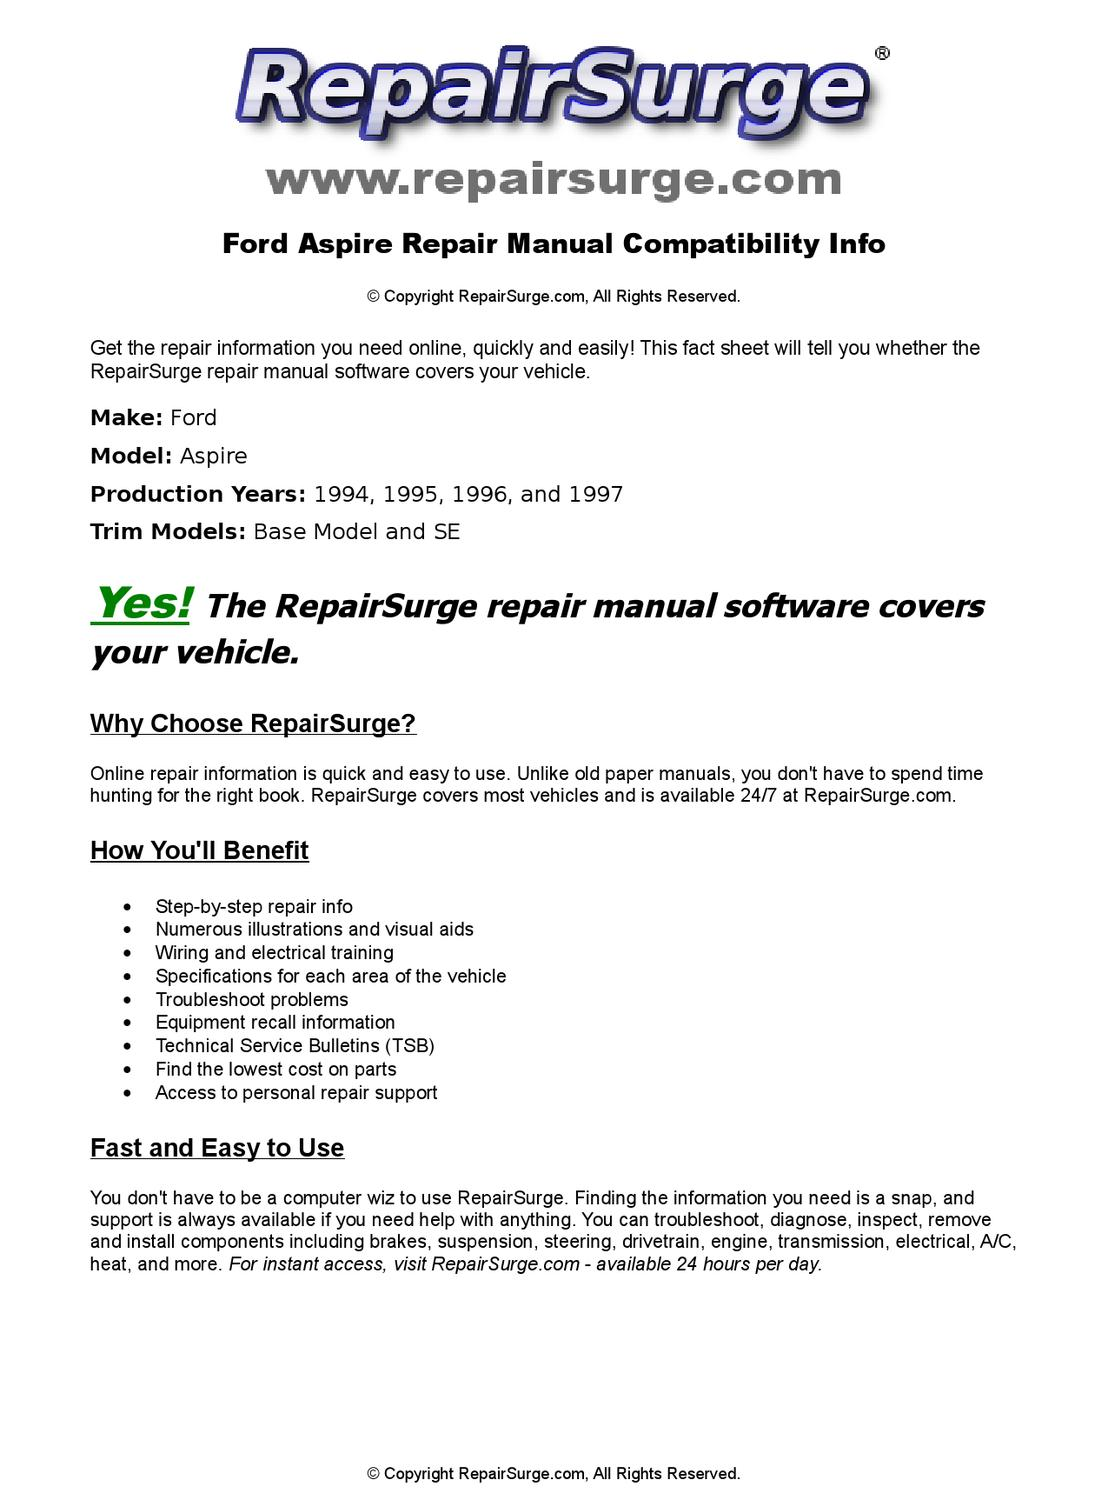 Ford Aspire Online Repair Manual For 1994, 1995, 1996, and 1997 by  RepairSurge - issuu